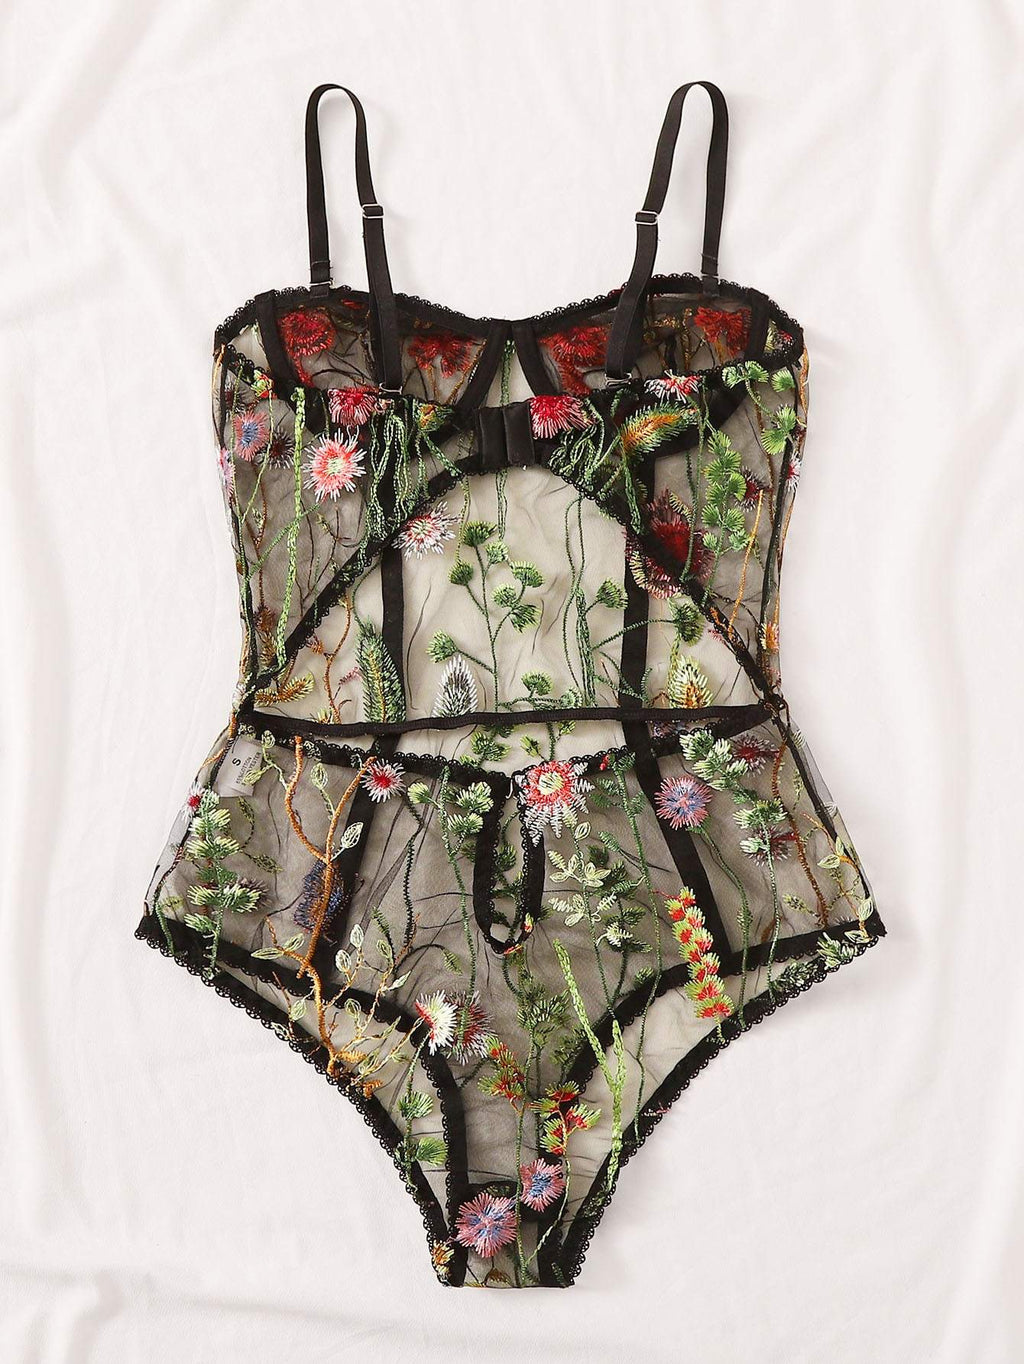 Floral Embroidered Mesh Underwire Teddy Bodysuit - INS | Online Fashion Free Shipping Clothing, Dresses, Tops, Shoes